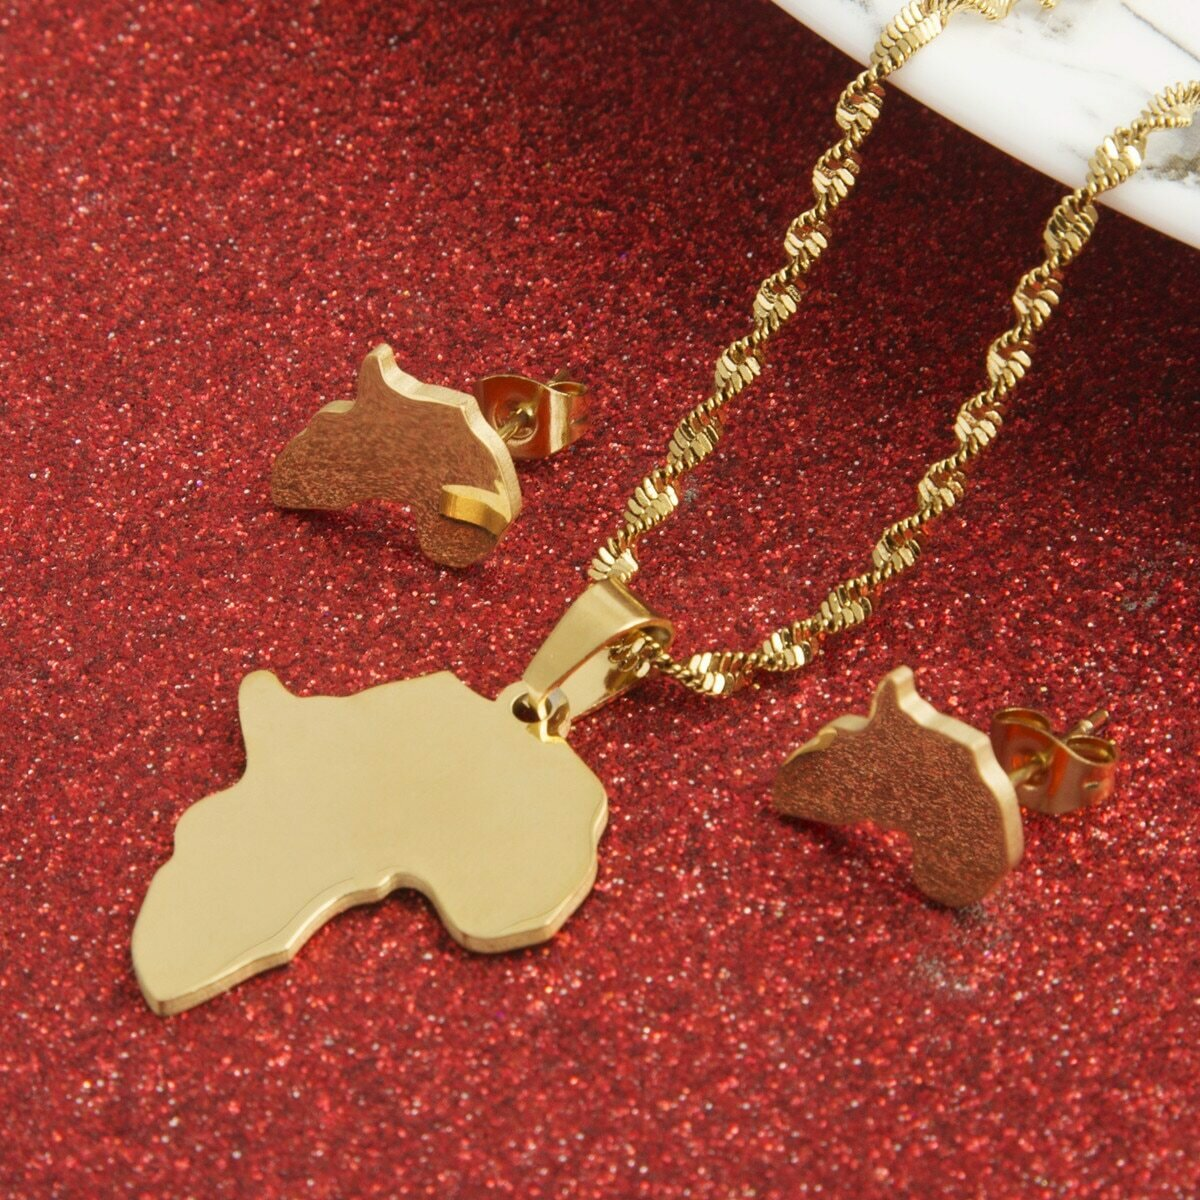 Pendant Necklace Jewelry Earrings Africa-Map Women for Wholesale Hiphop-Item